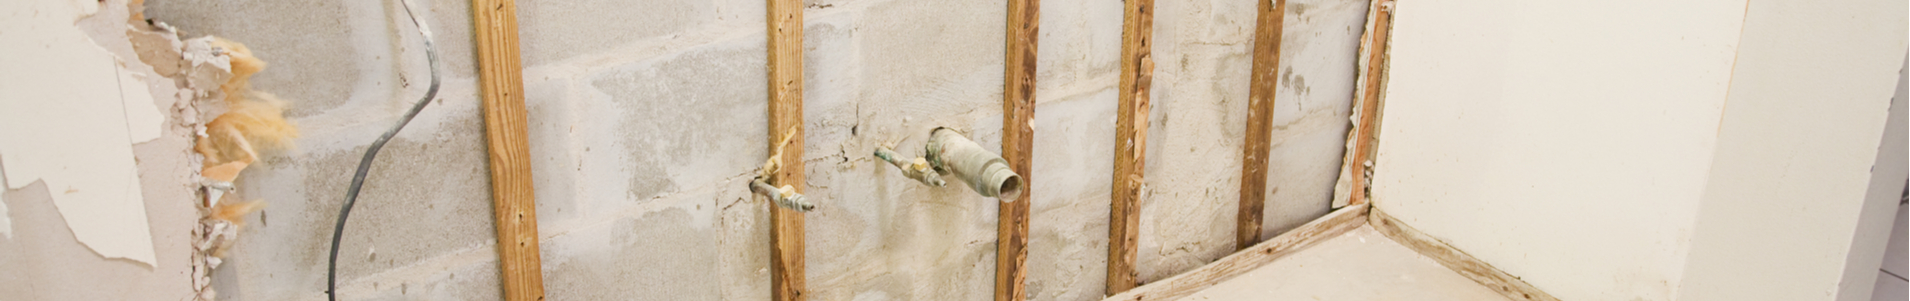 Mold Remediation and Basement Waterproofing from Del Grosso